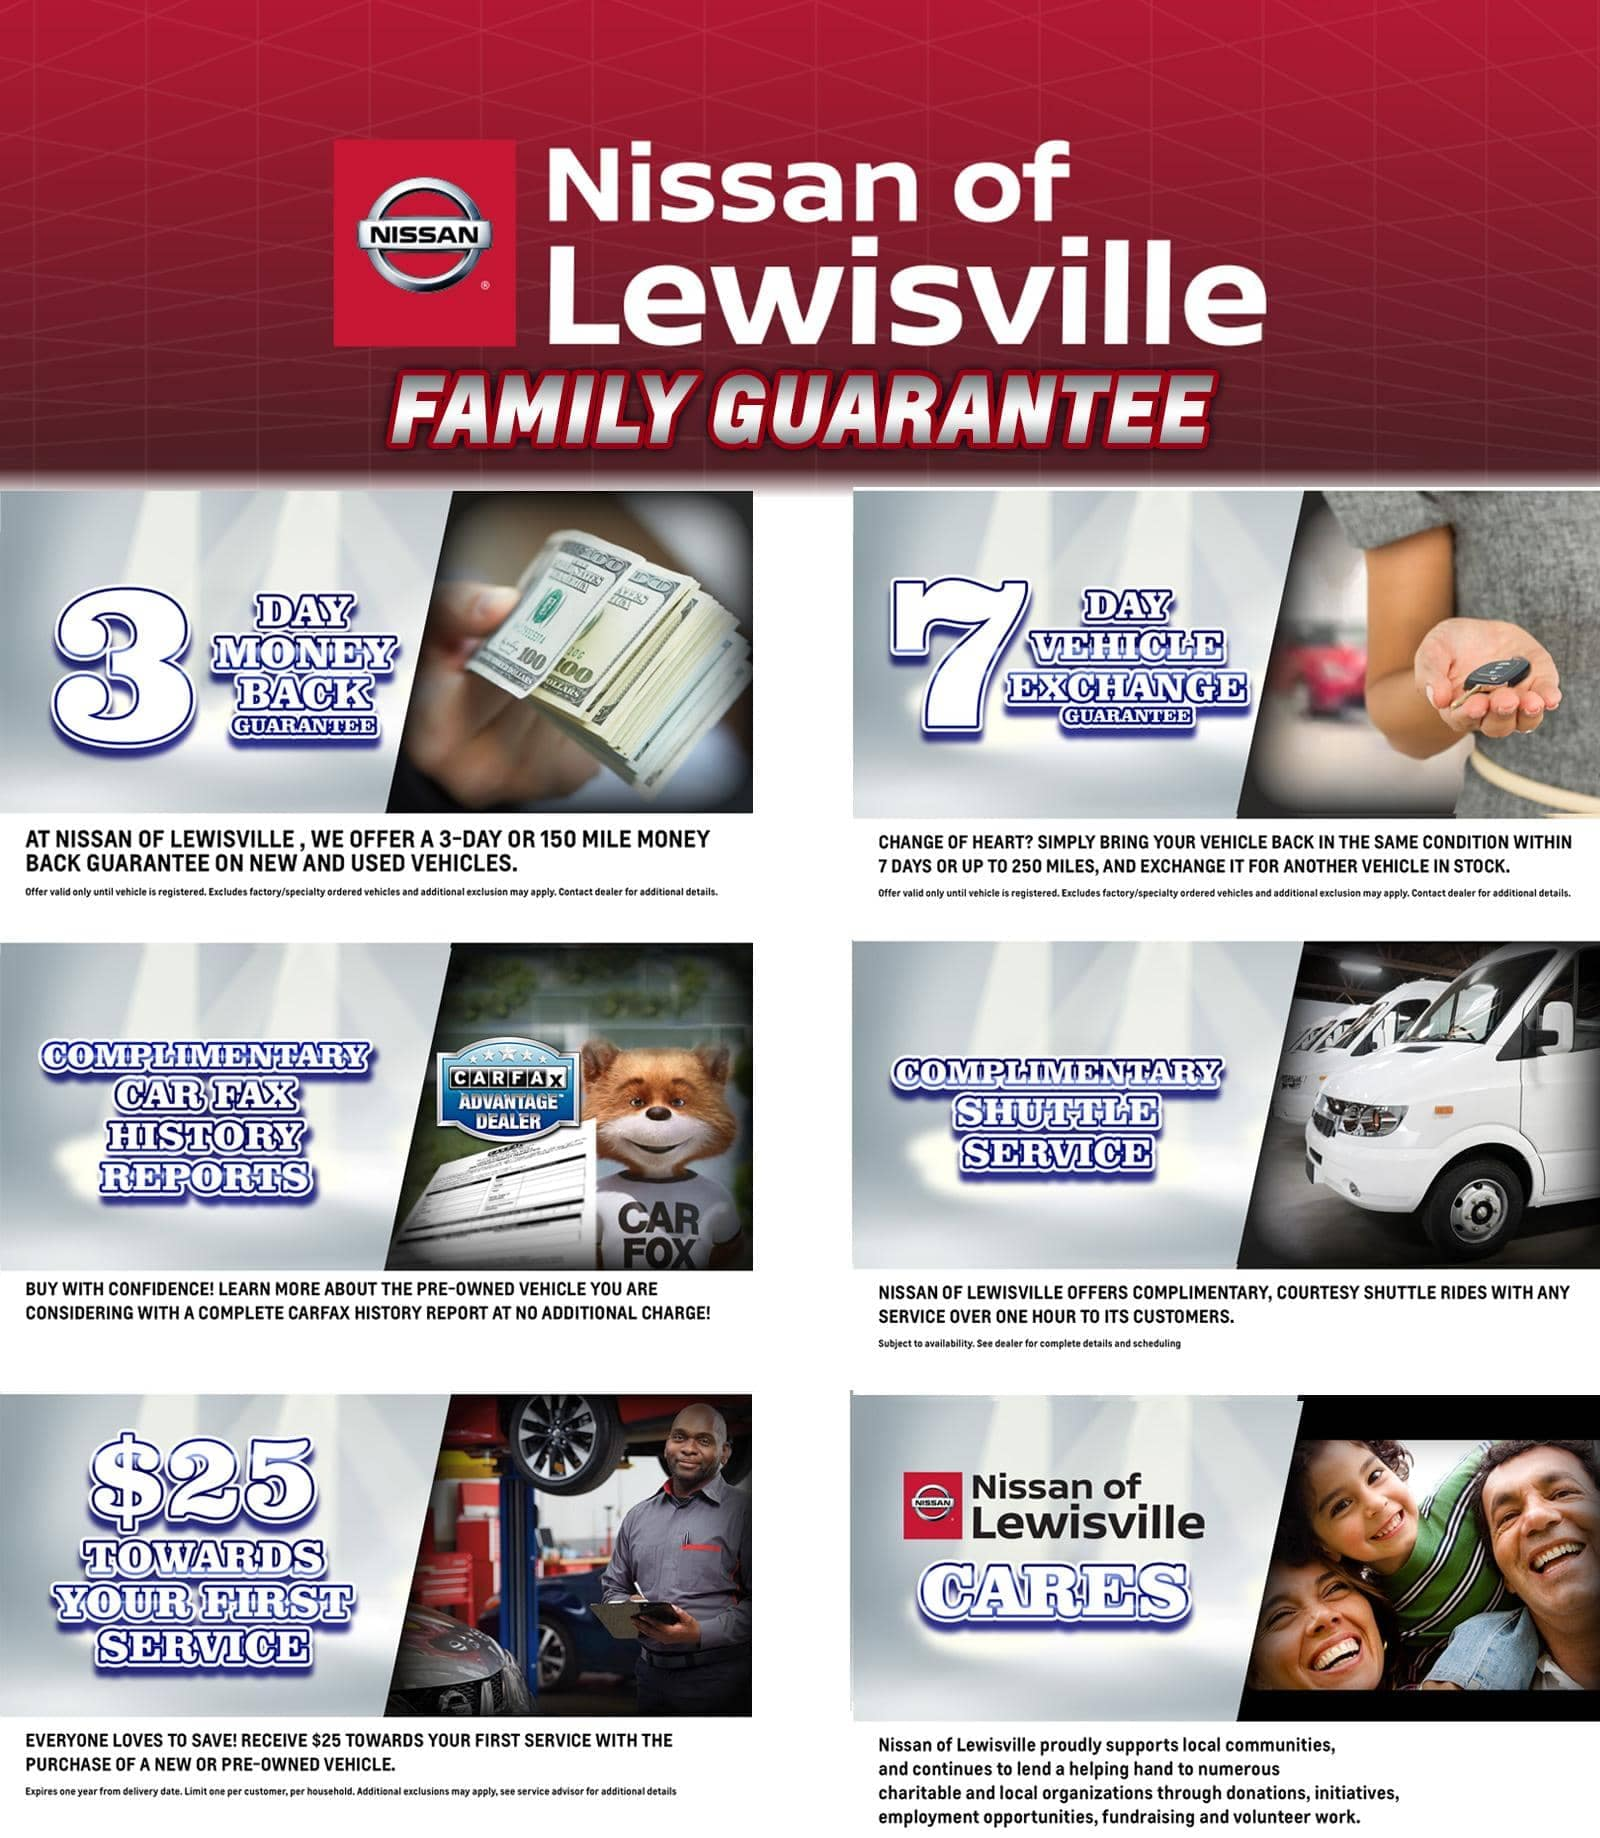 Nissan of Lewisville Family Guarantee